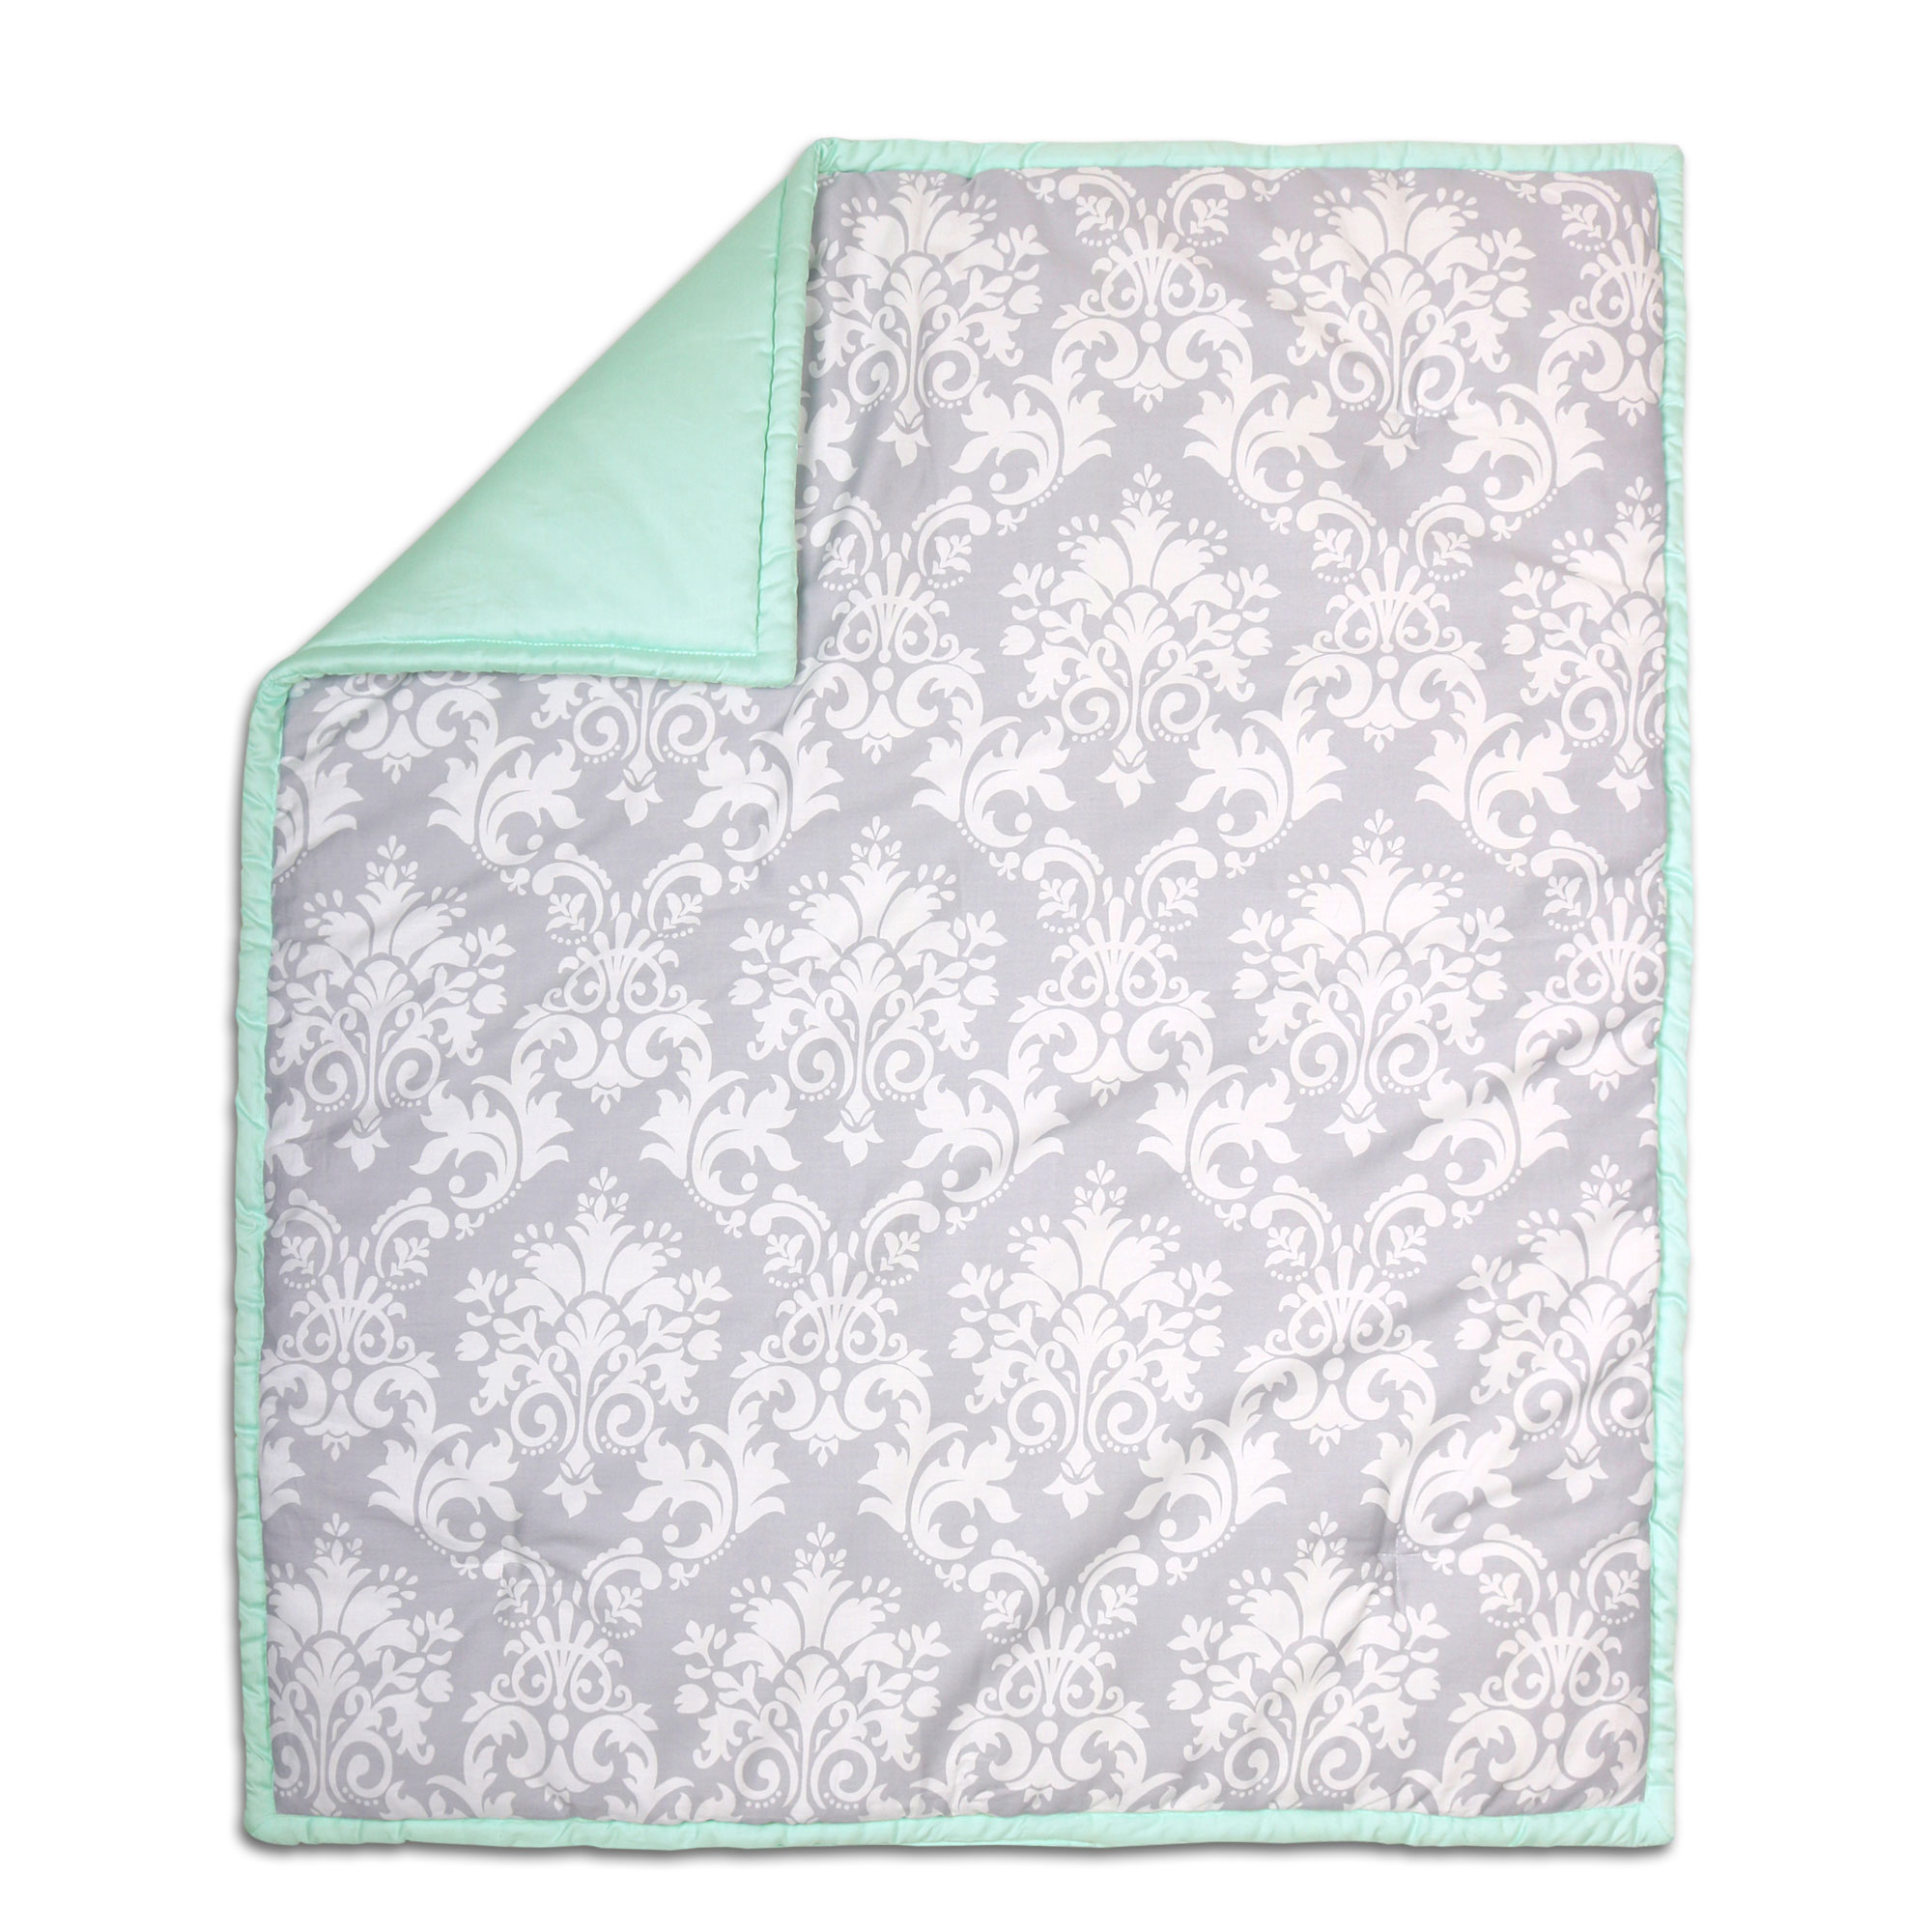 The Peanut Shell Baby Crib Quilt - Grey Floral Damask and Mint Green - 100% Cotton Sateen Fabrics, 44 by 37 Inches